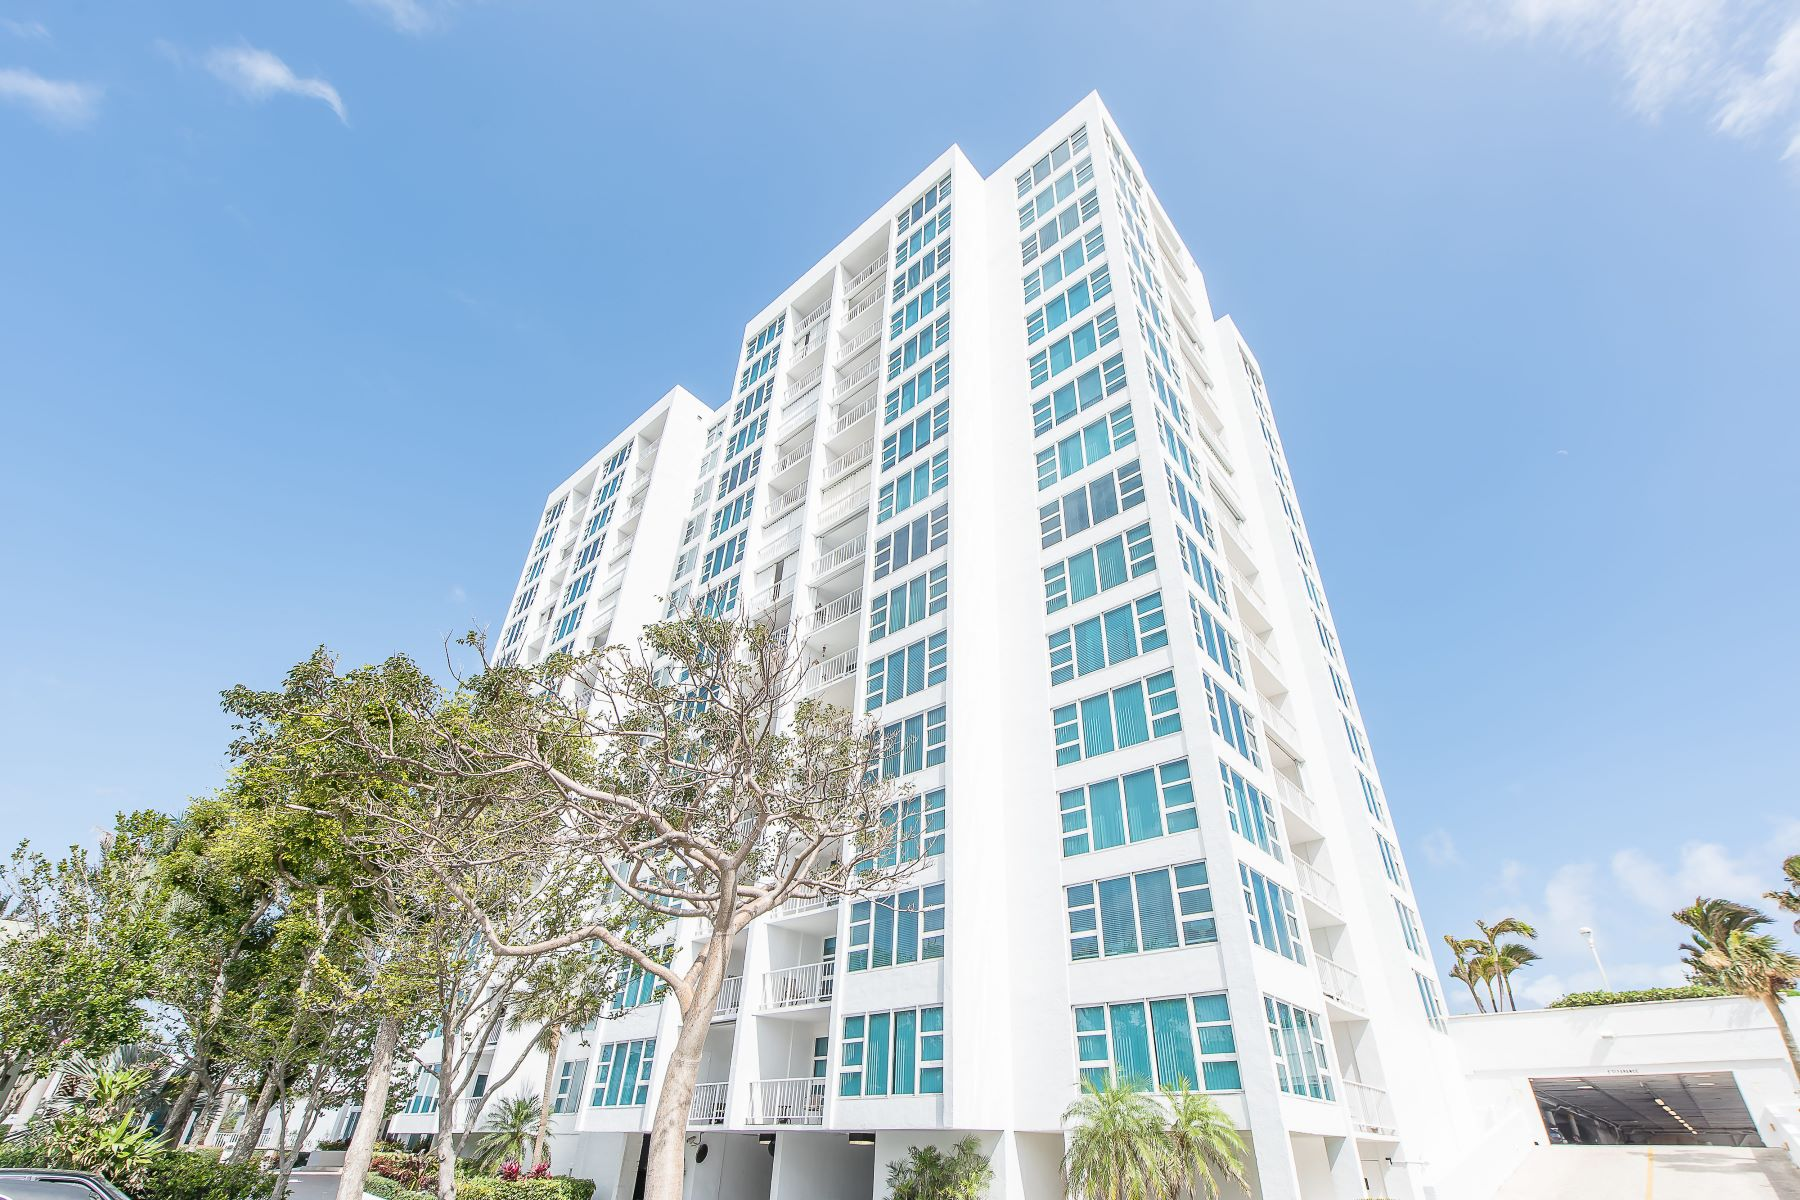 condominiums for Active at 1620 S Ocean Blvd 11K Lauderdale By The Sea, Florida 33062 United States